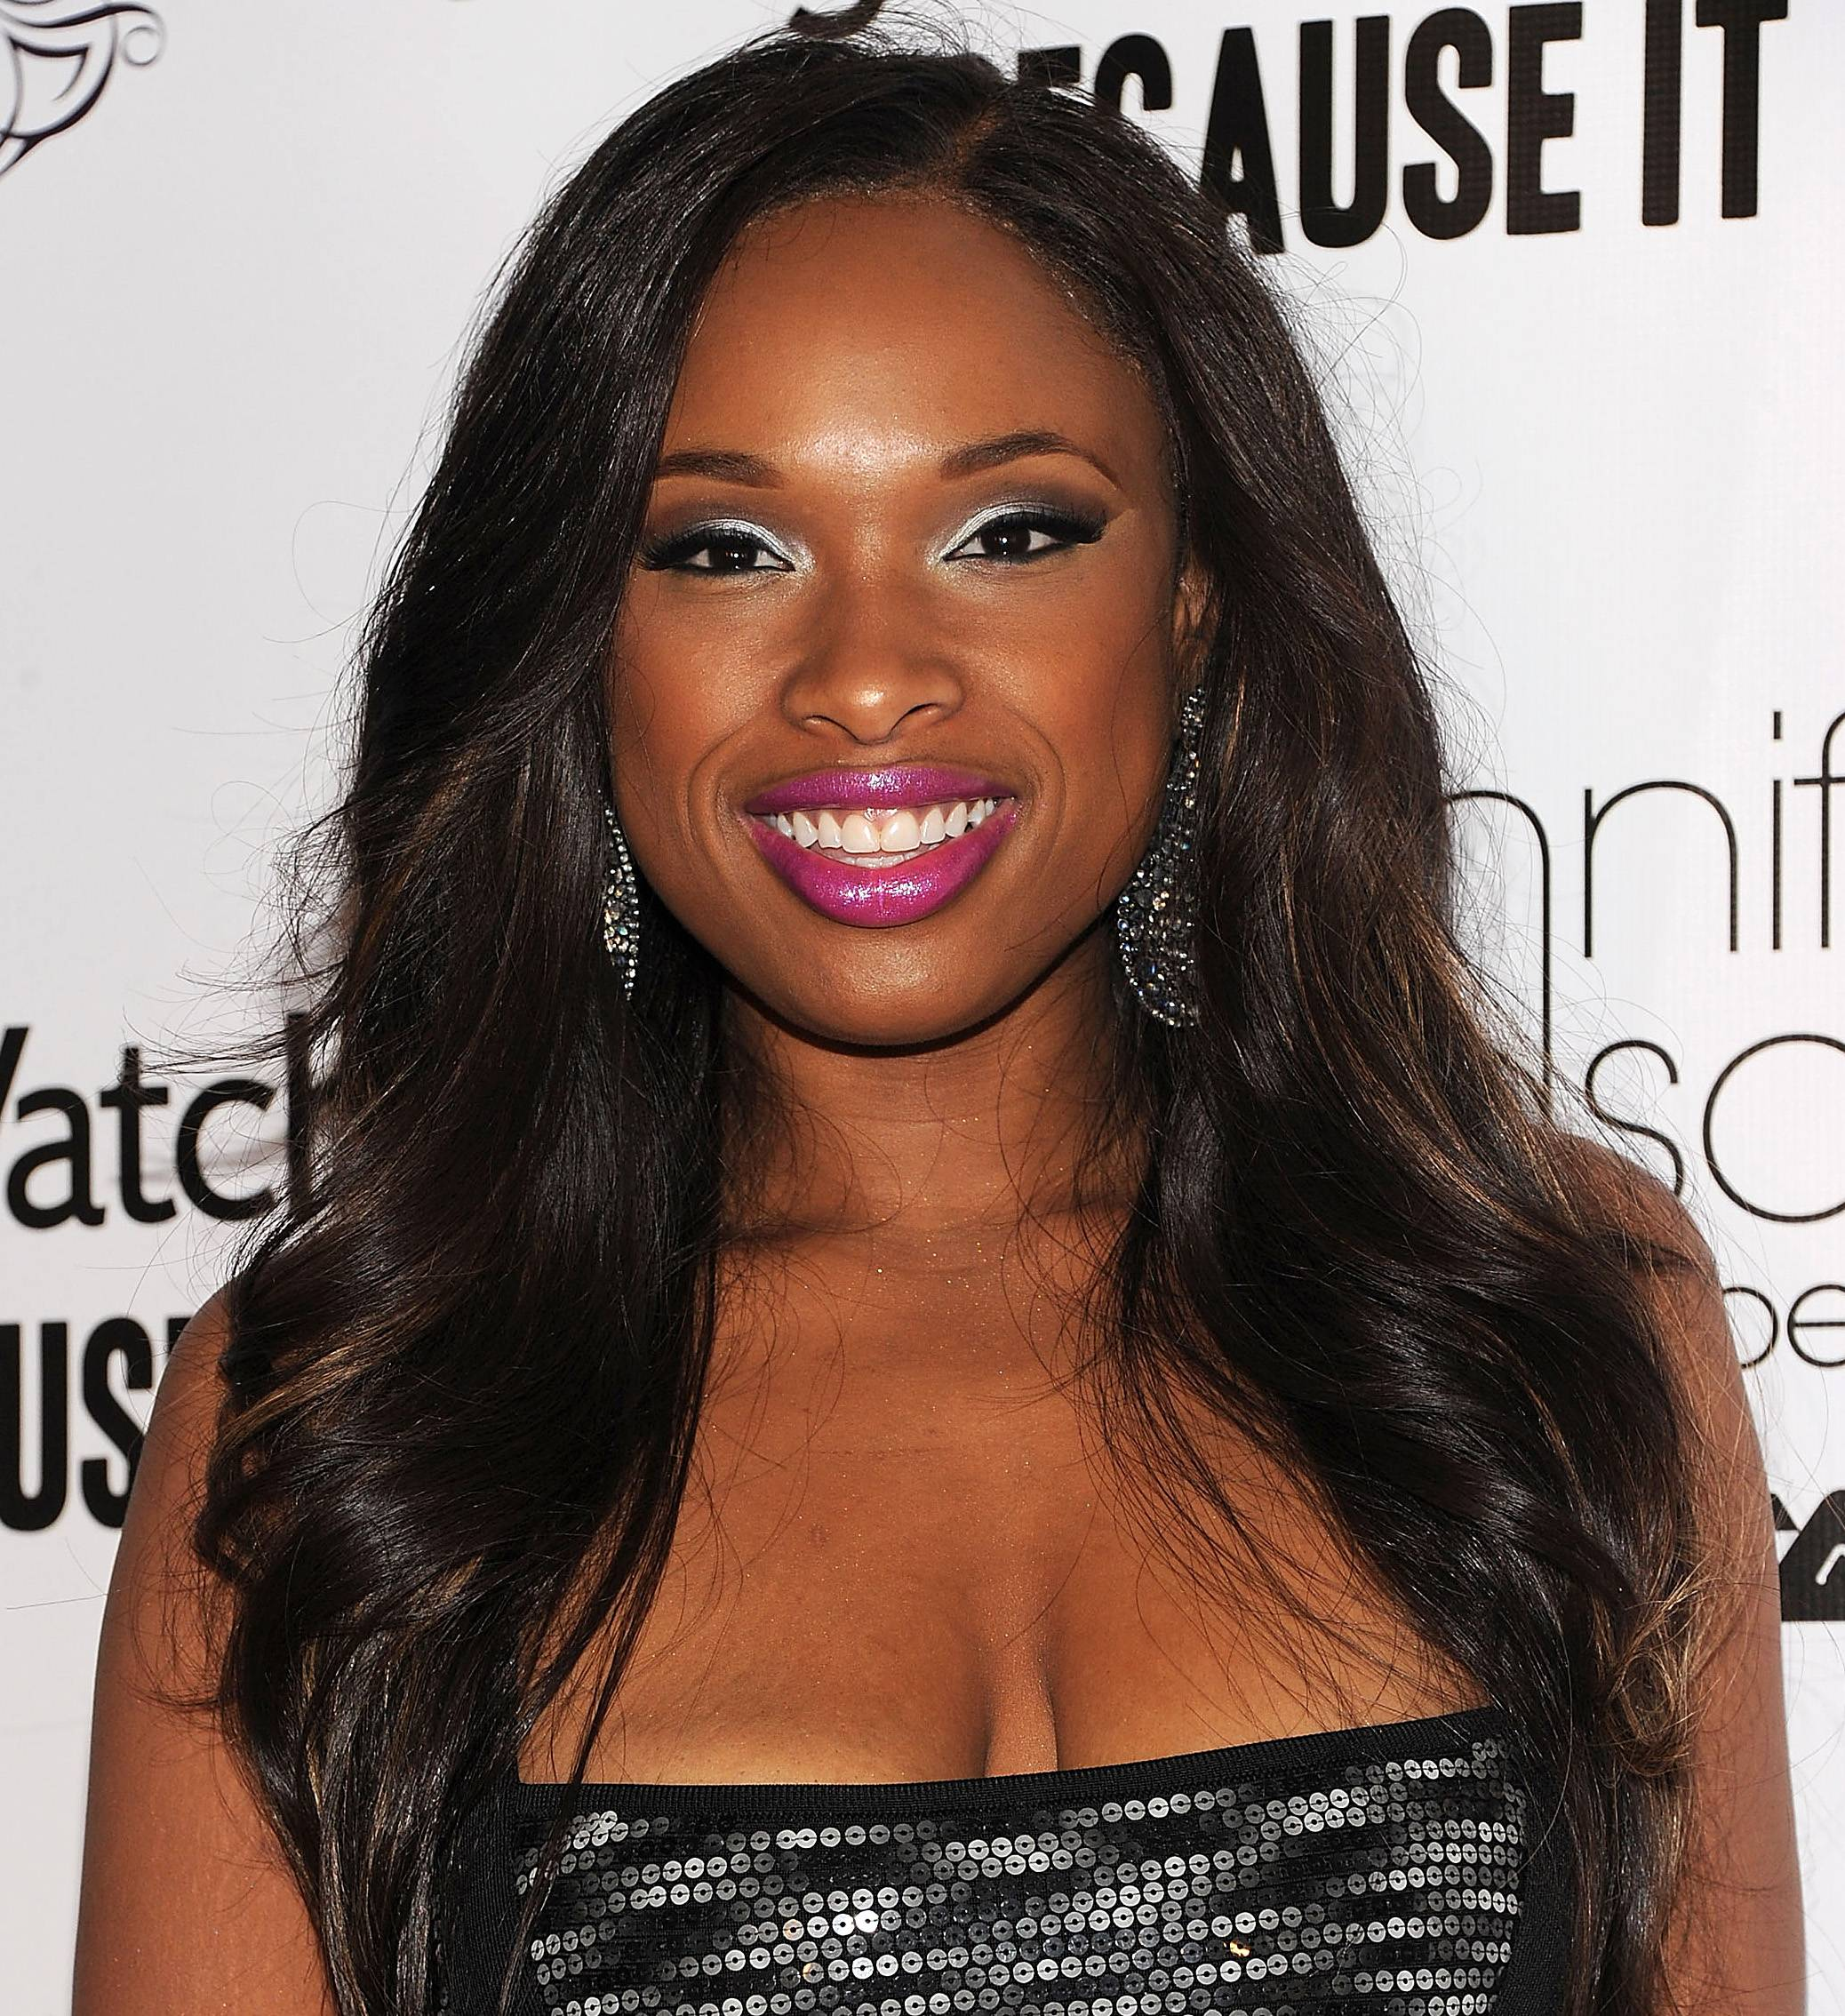 She Rocked American Idol - Yes, we know J-Hud didn?t win it all on American Idol during her run on Season 3. But we?re kind of glad she didn?t. She bypassed any American Idol winner curse and blazed her own trail.(Photo: Neilson Barnard/Getty Images)